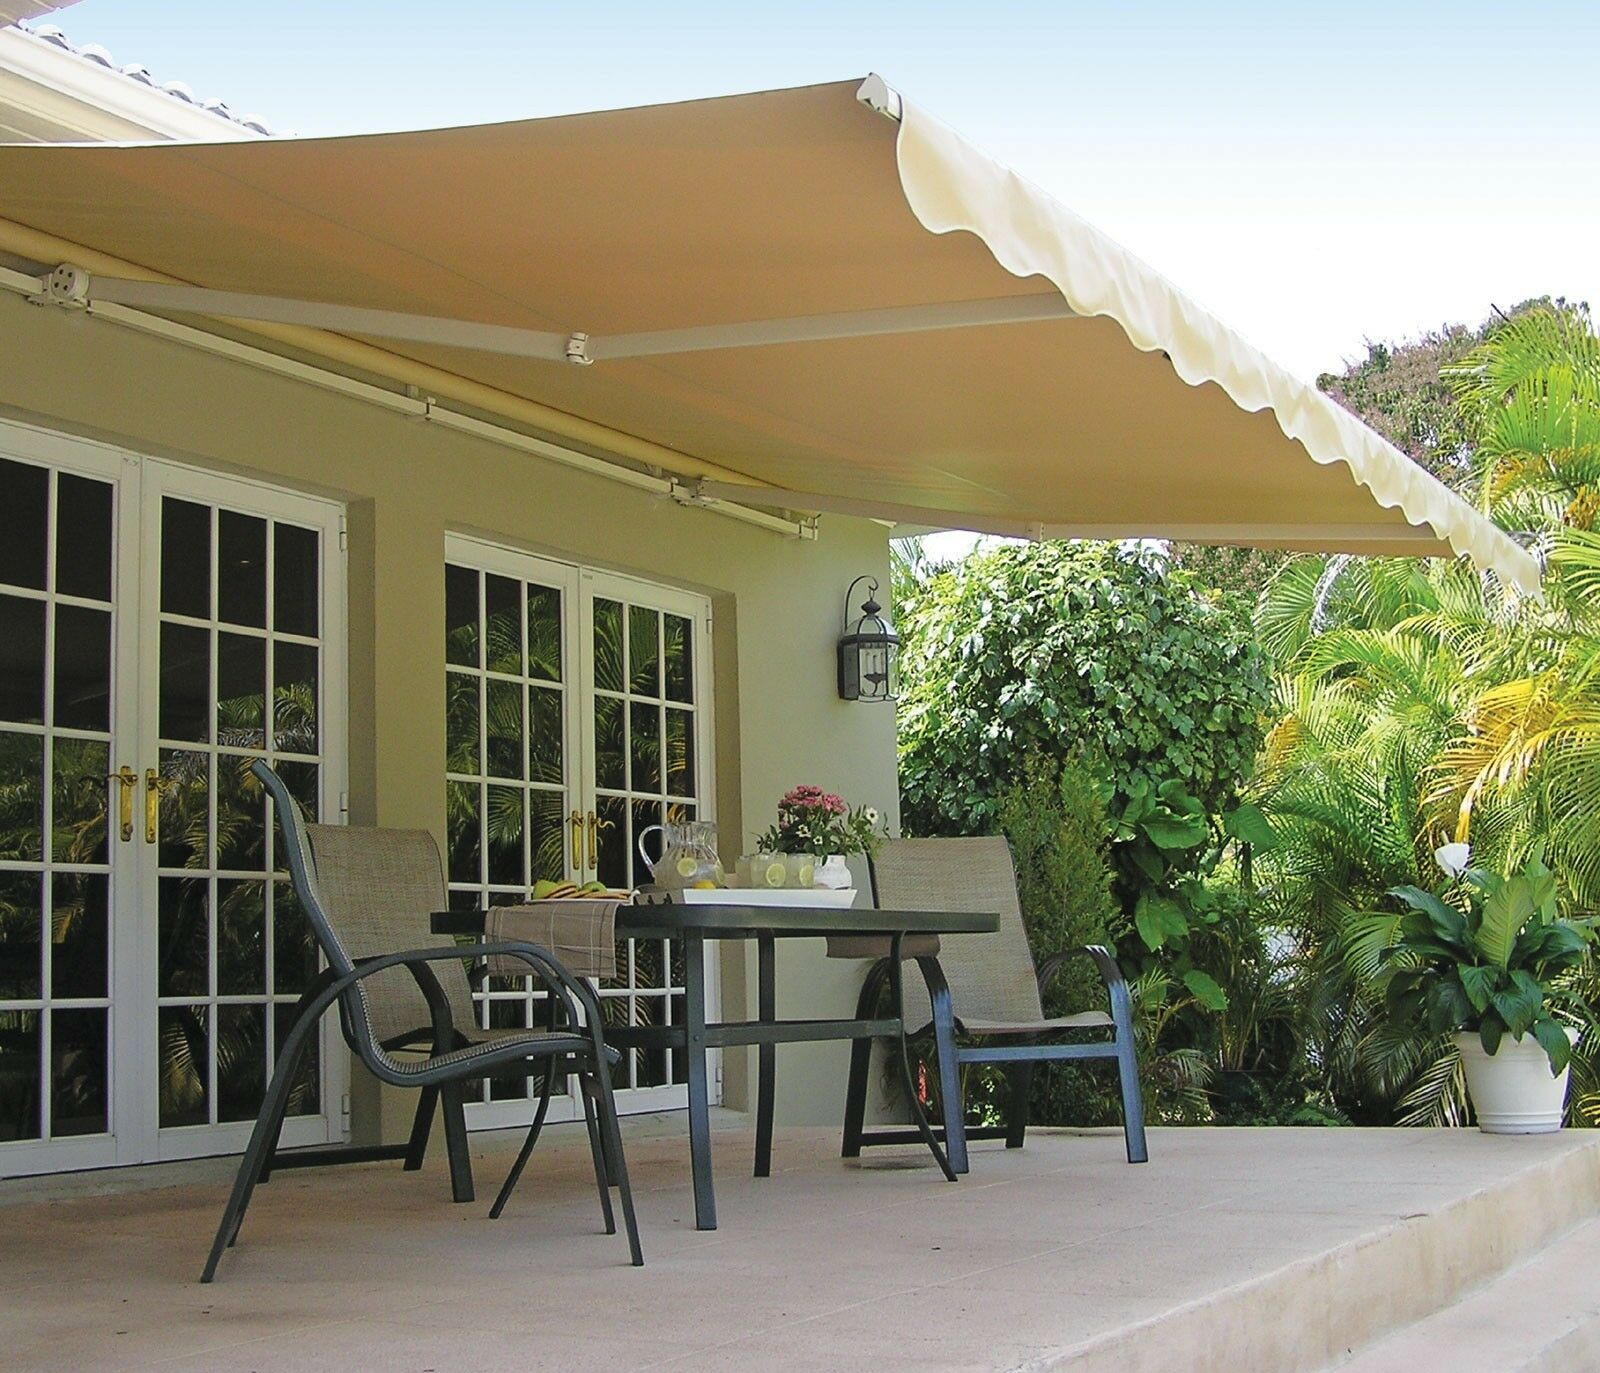 store awnings products with sunsetter wheat style awning custom